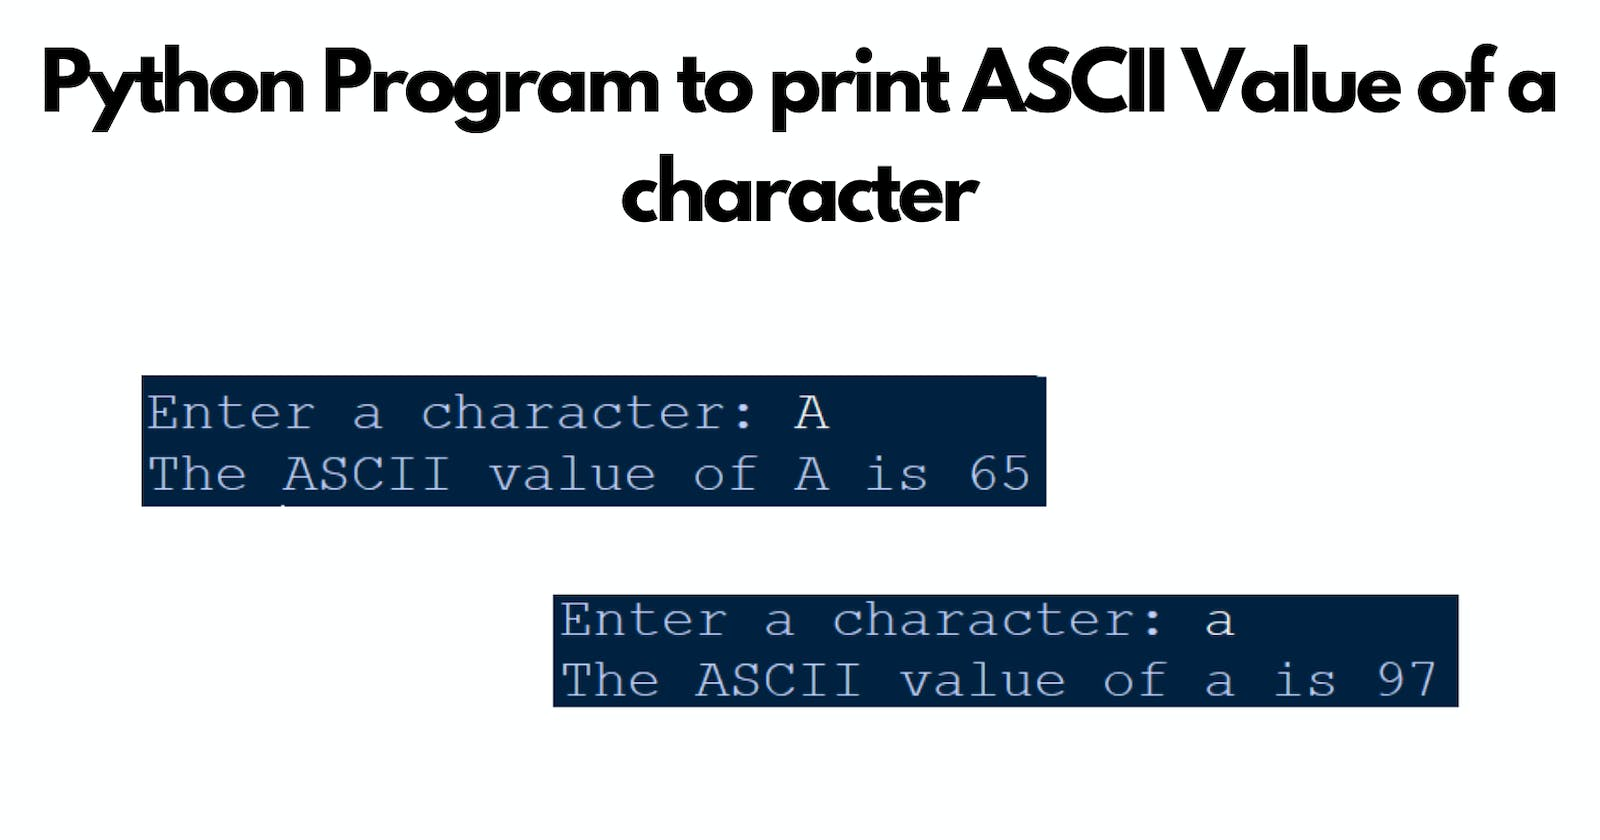 Python Program to print ASCII Value of a character